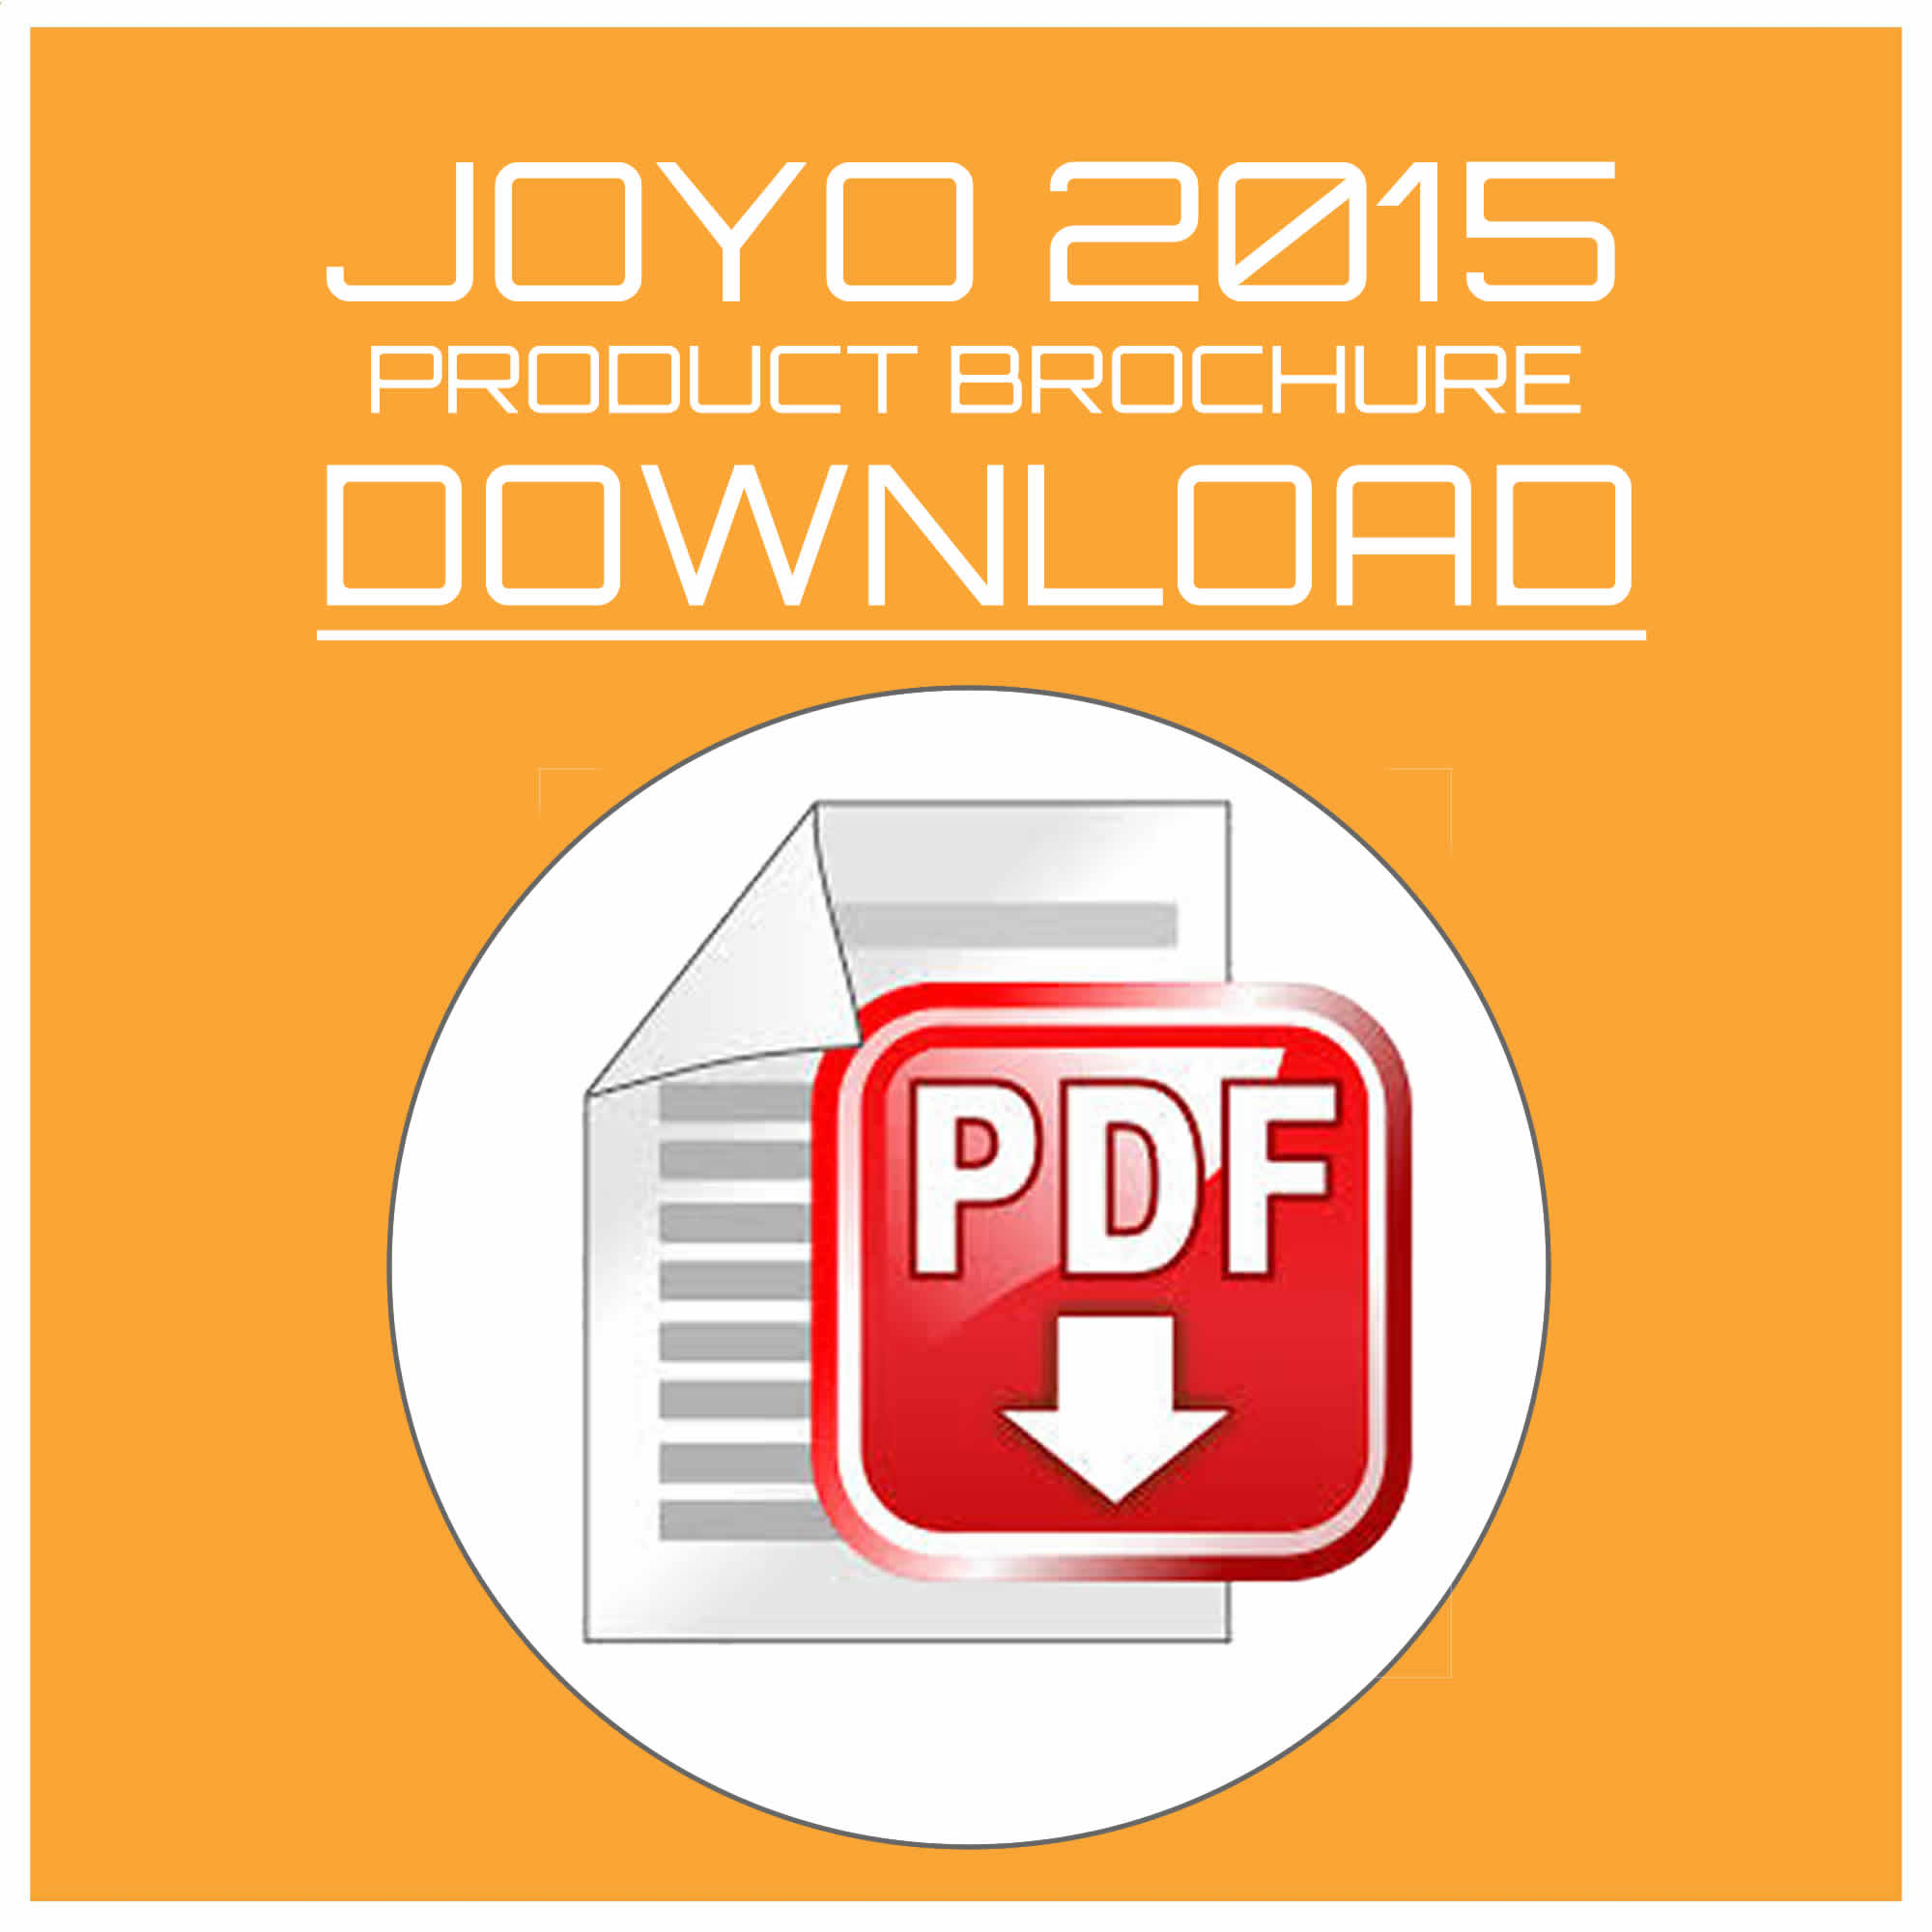 JOYO 2015 Product Brochure Download UK Distributor